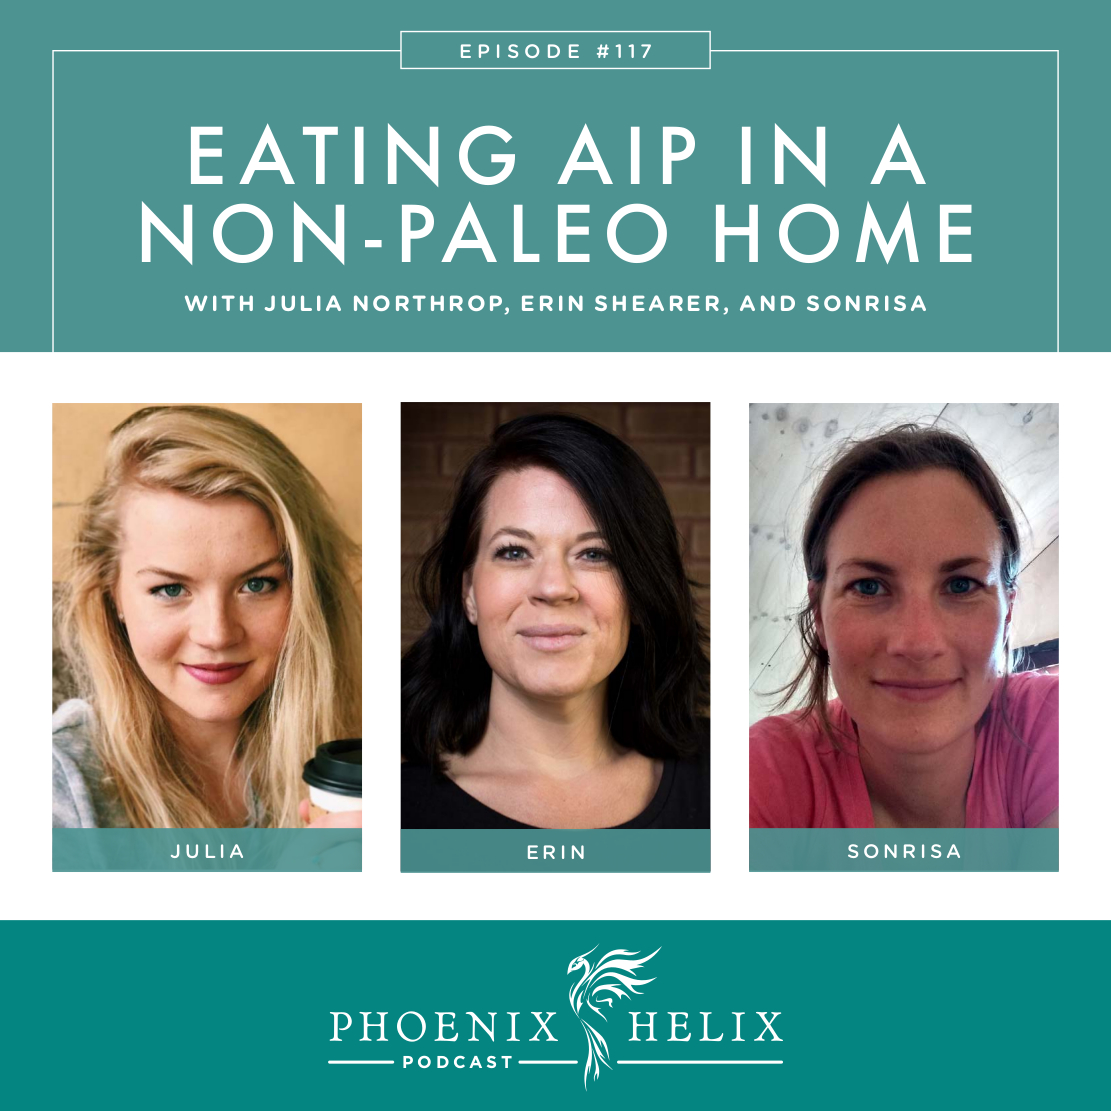 Eating AIP in a Non-Paleo Home | Phoenix Helix Podcast